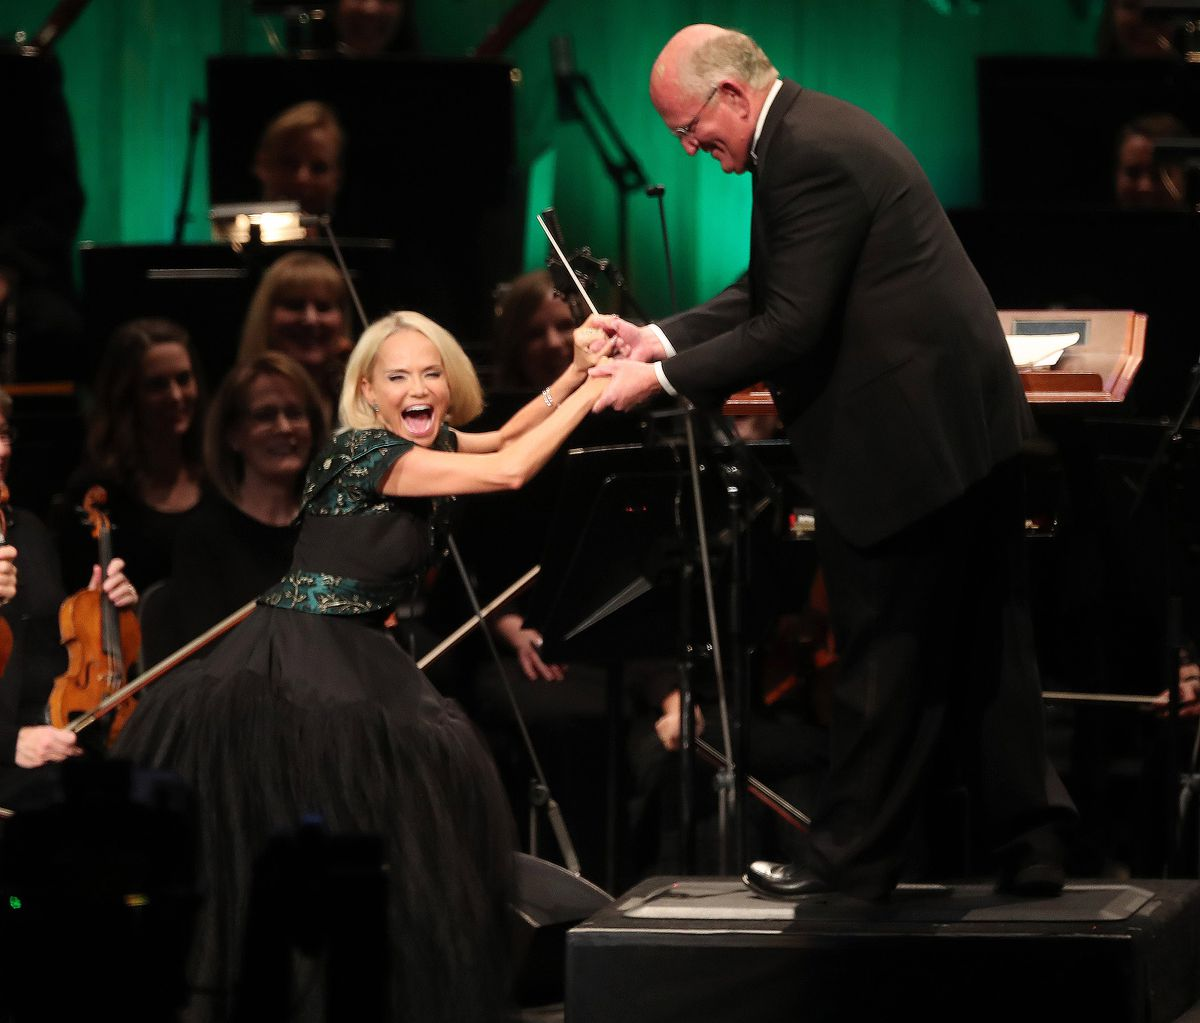 Actress Kristin Chenoweth jokes with conductor Mack Wilberg while singing with The Tabernacle Choir at Temple Square during their annual Christmas concert in Salt Lake City on Thursday, Dec. 13, 2018.